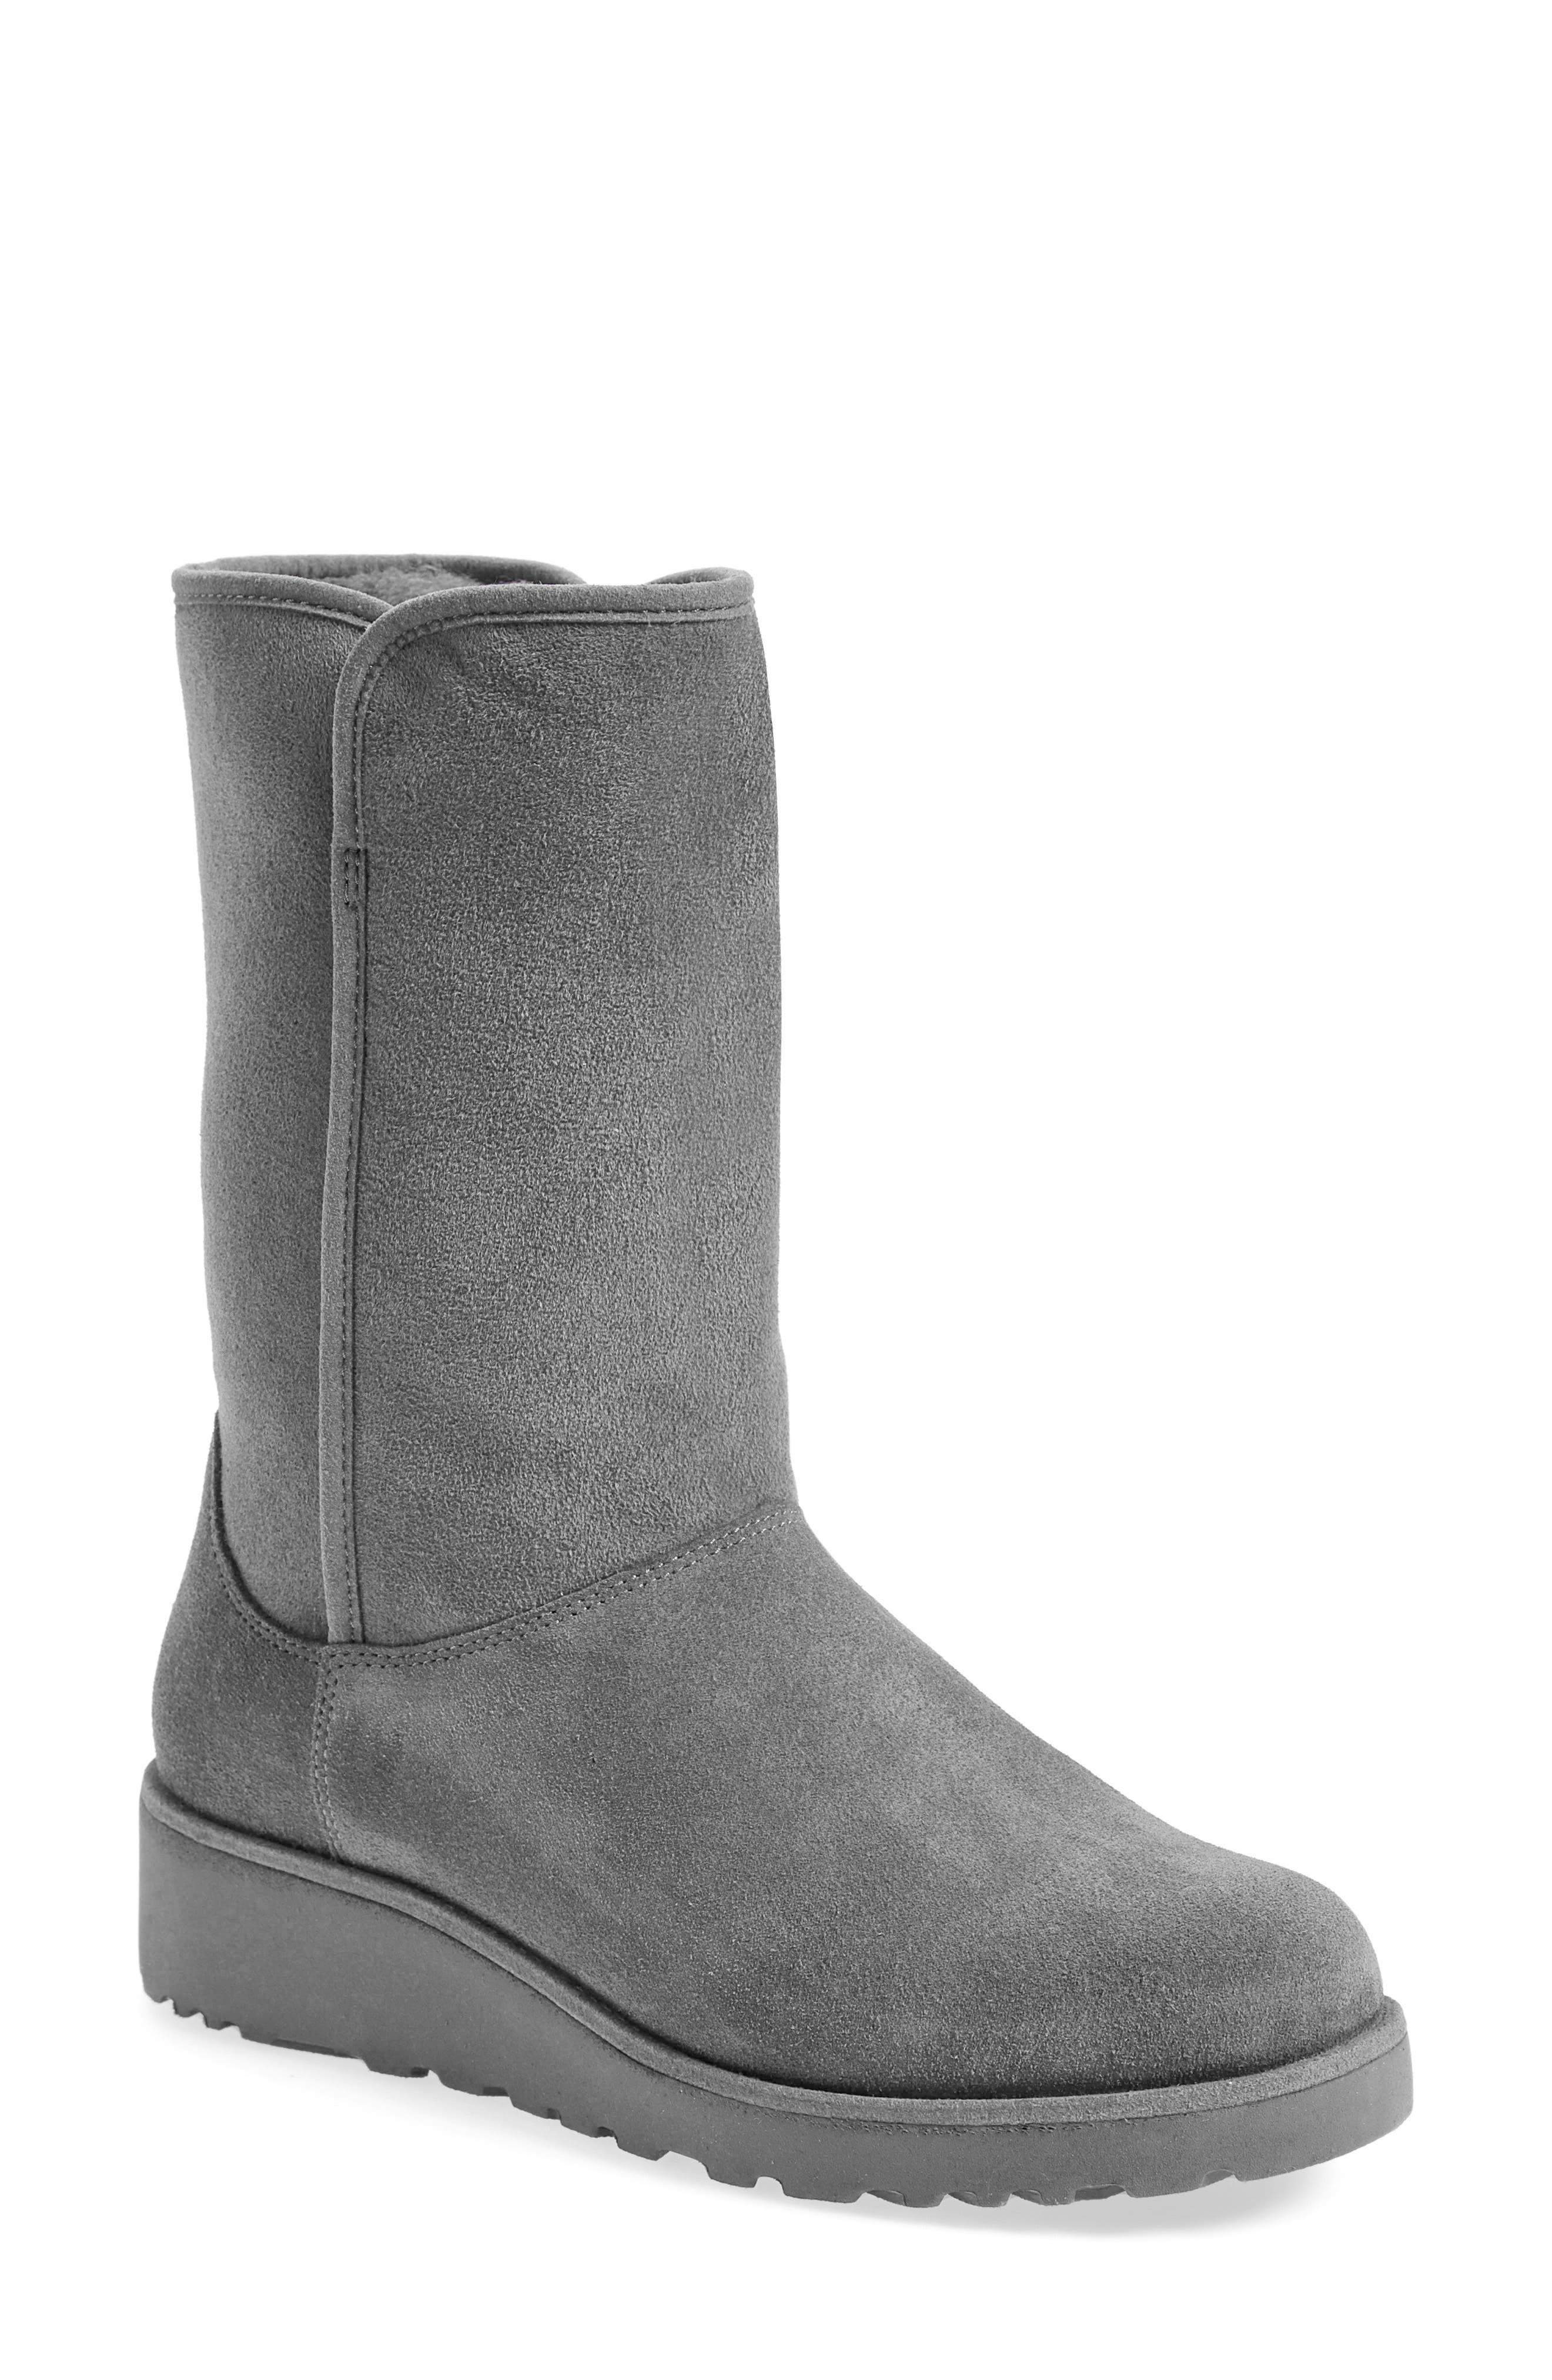 Amie - Classic Slim<sup>™</sup> Water Resistant Short Boot,                             Alternate thumbnail 2, color,                             GREY SUEDE